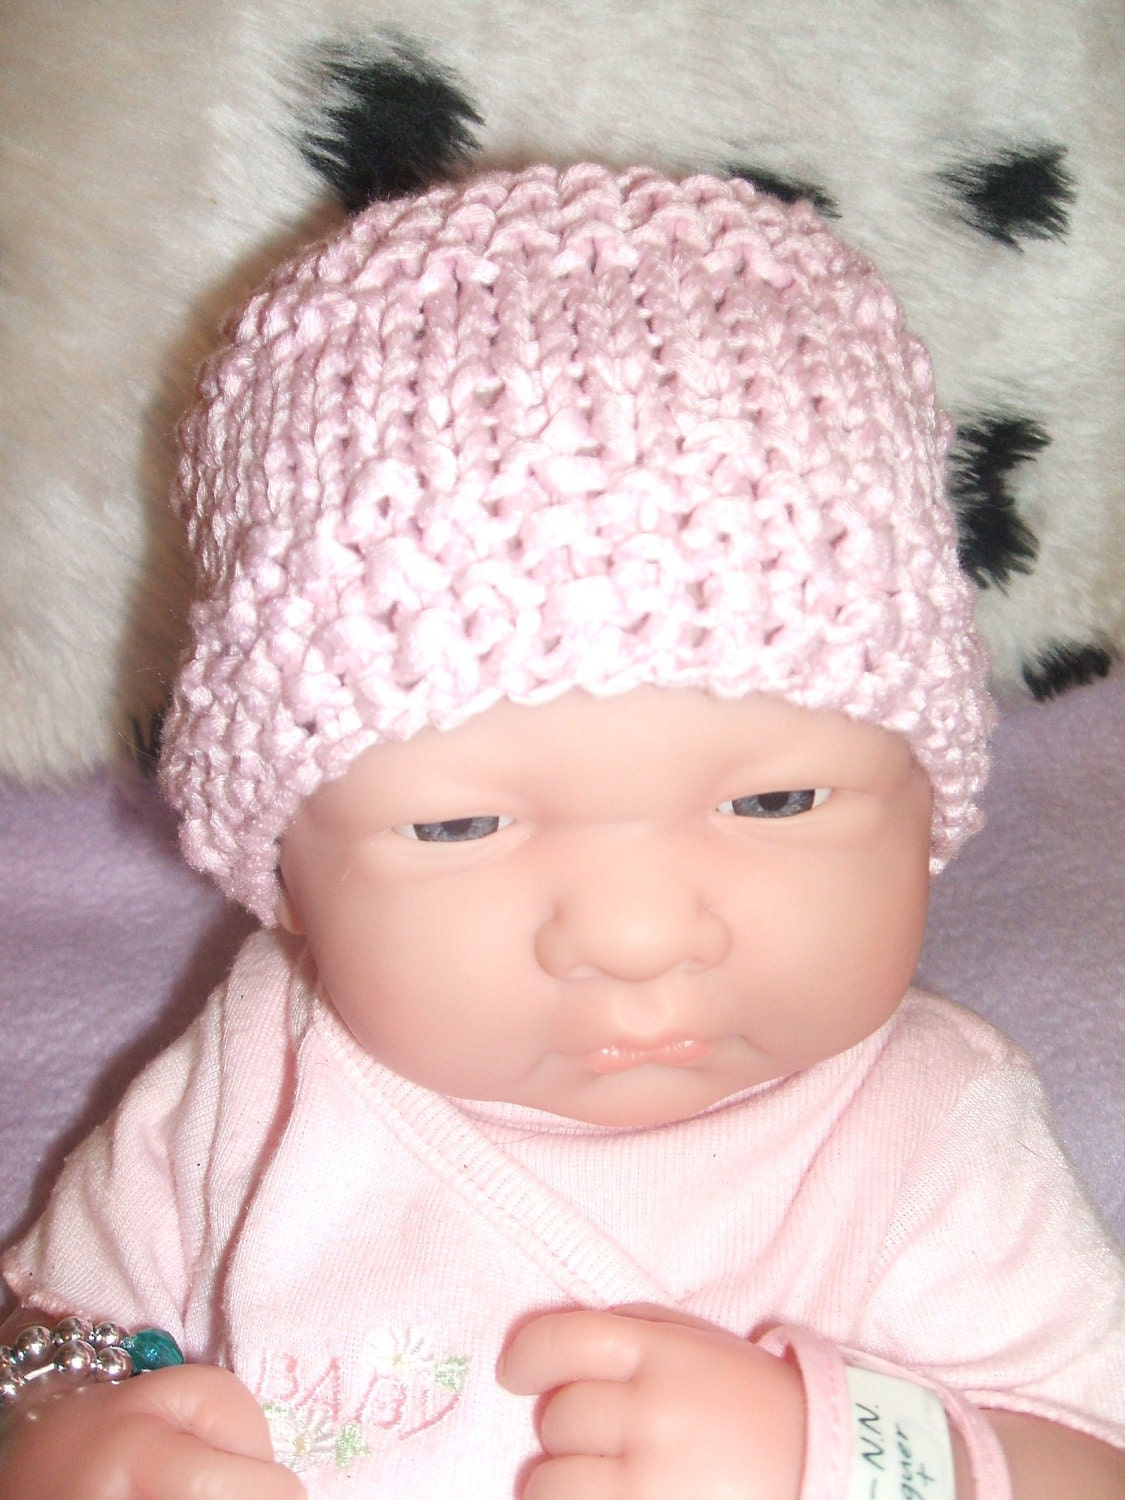 gorgeous little hand knitted hat 100 bamboo pink small newborn reborn baby